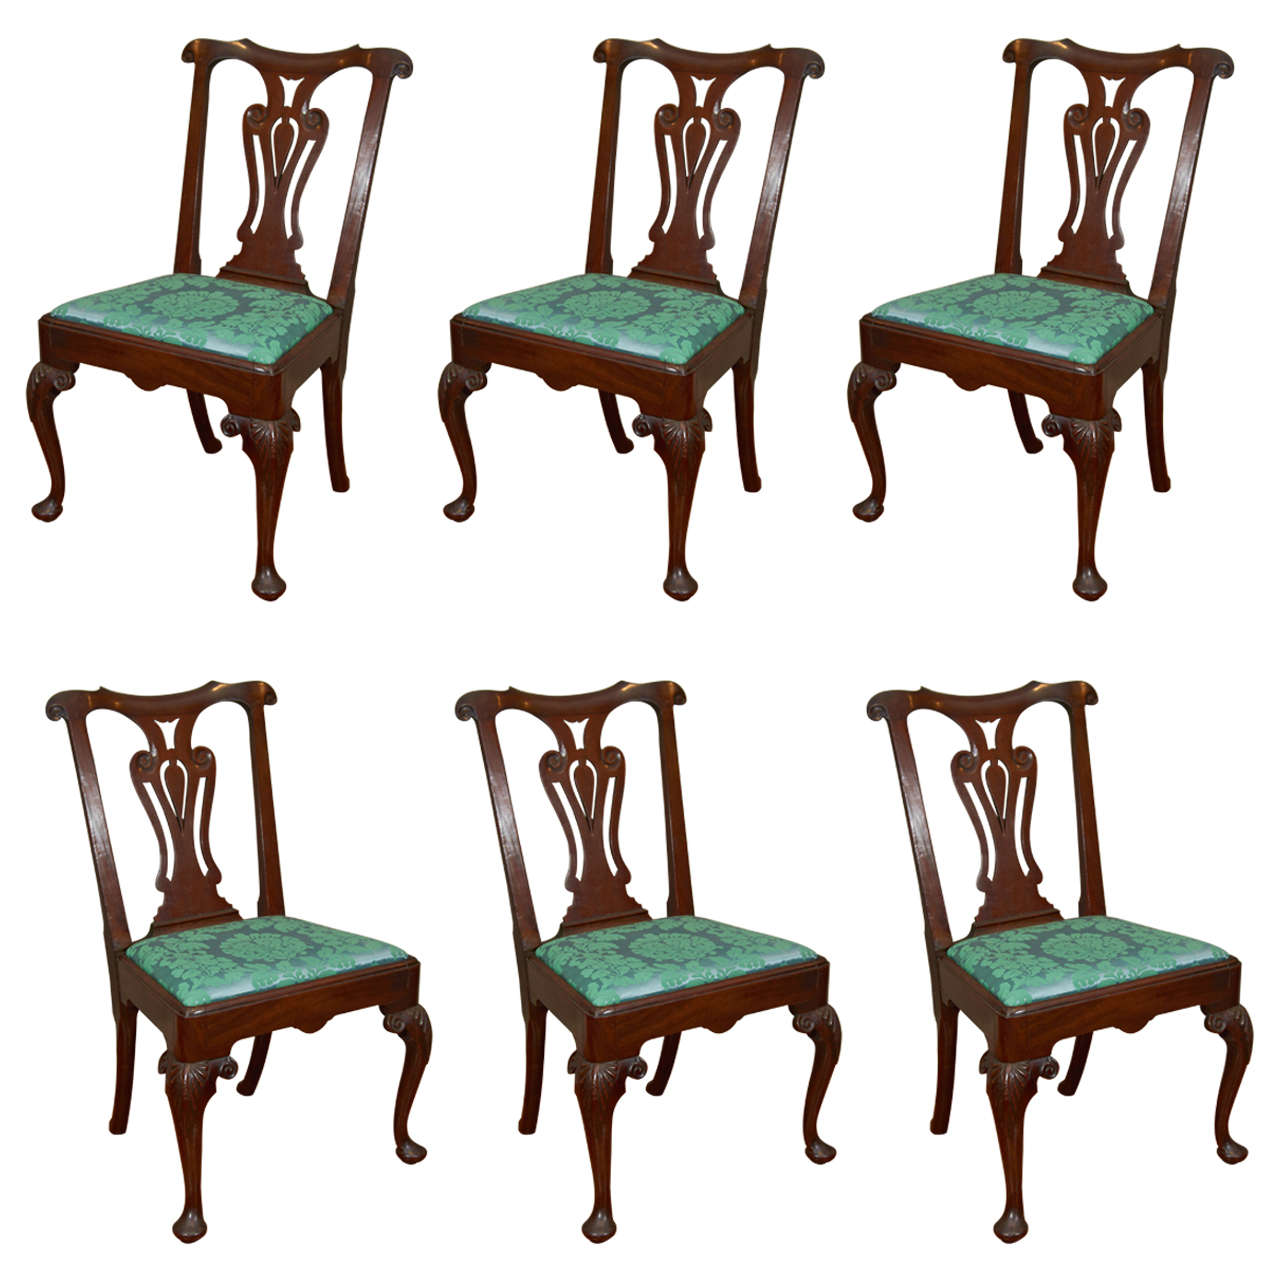 design decor arms and upholstered ideas chair sale chairs room showcase dining for with